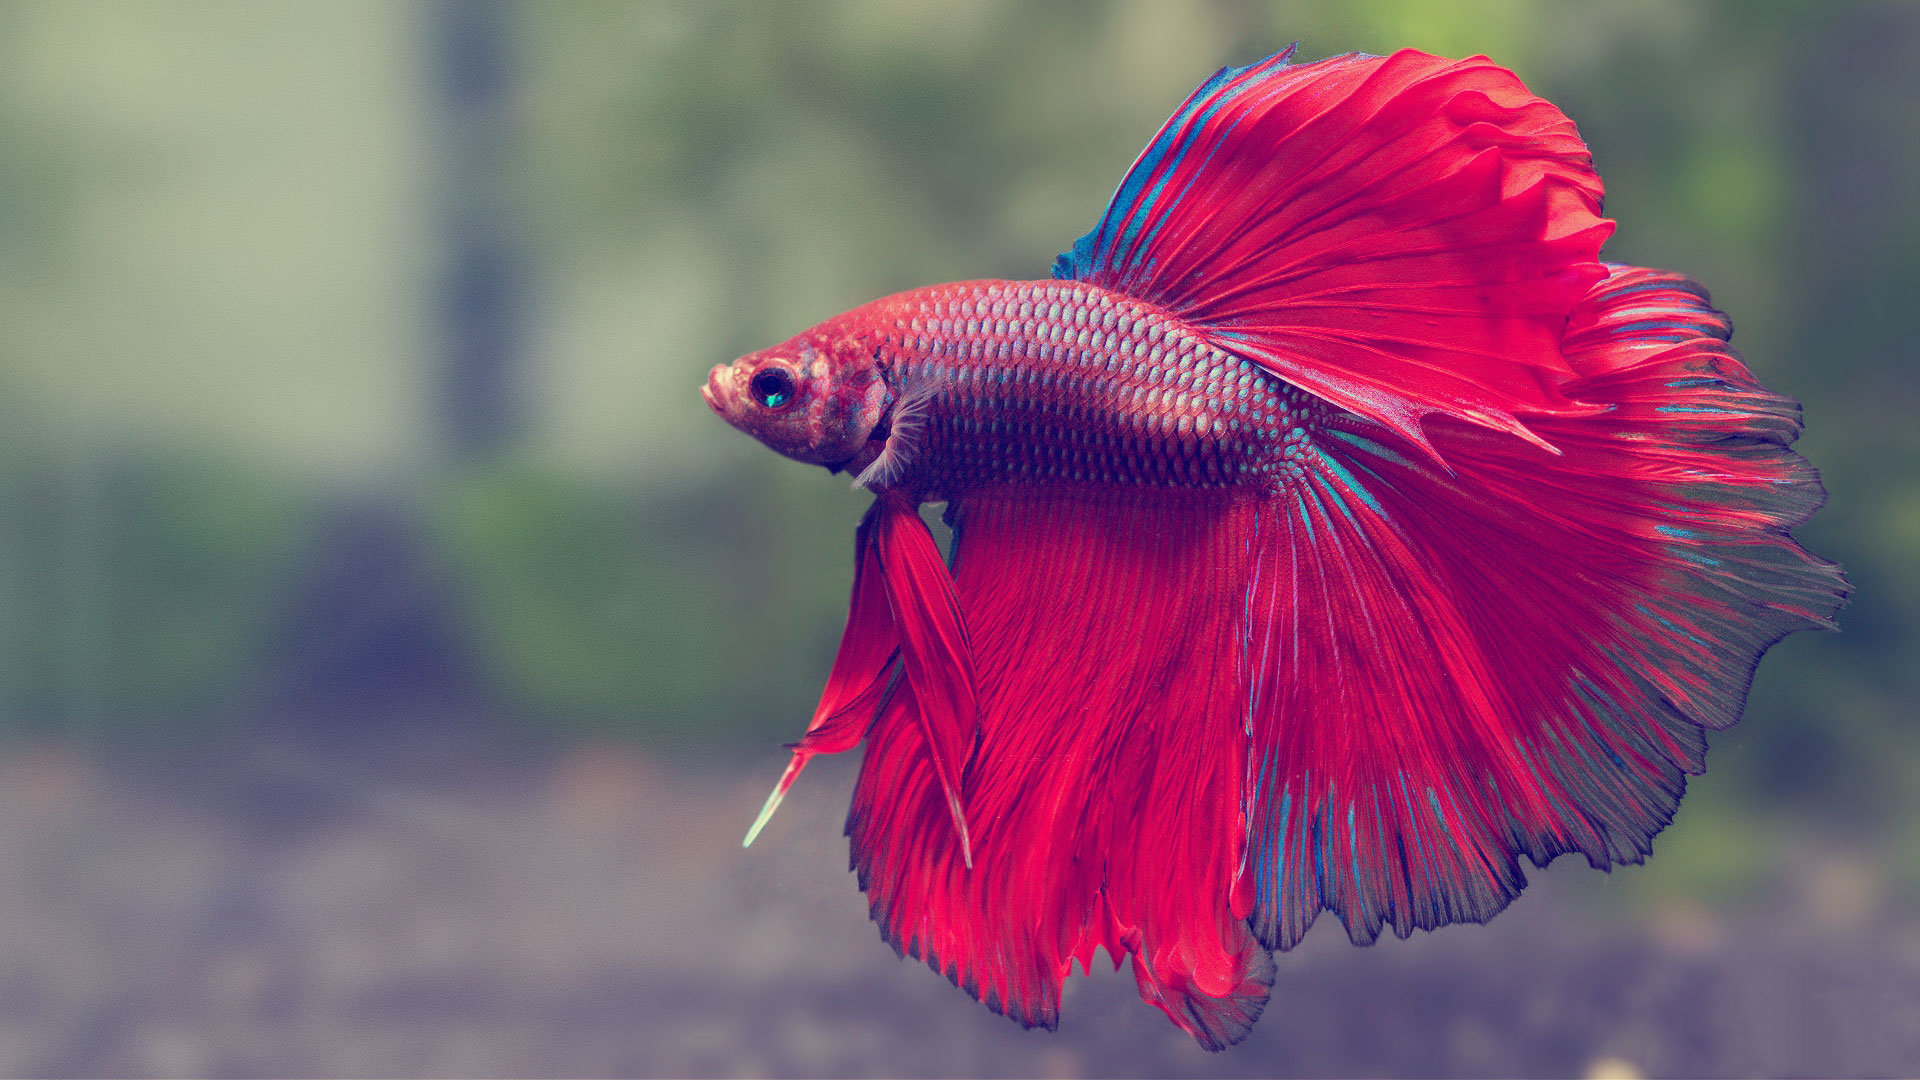 Download 1080p Betta desktop background ID:212071 for free